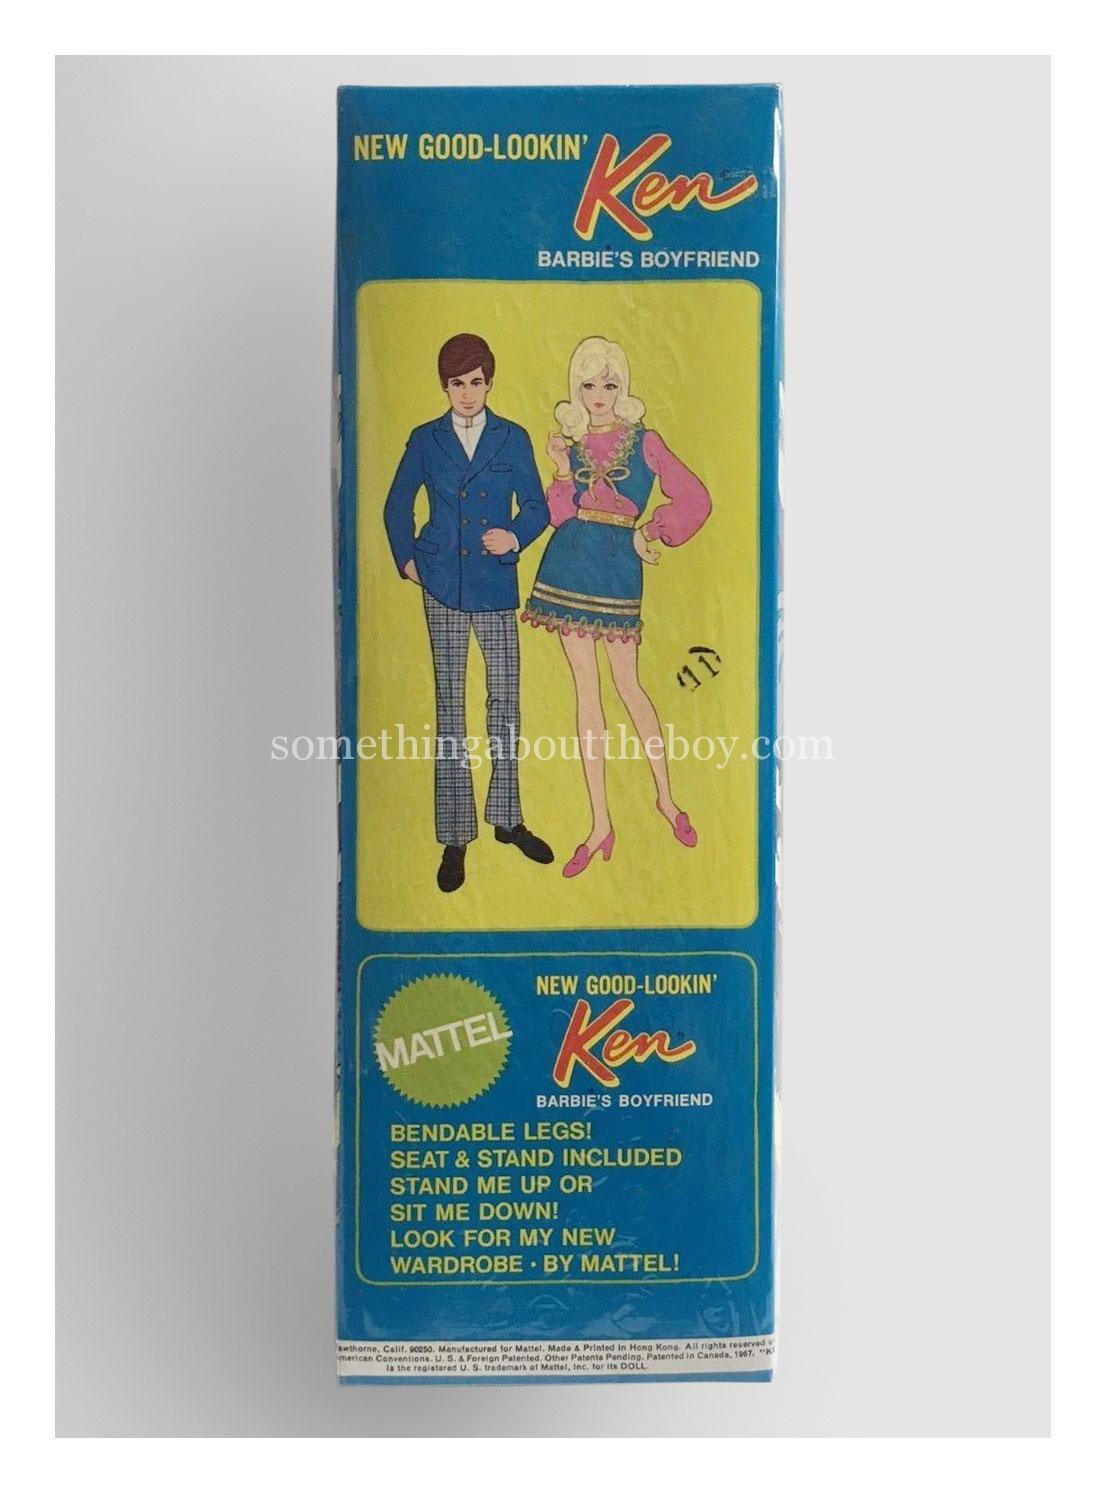 1971 #1124 New Good-Lookin' Ken original packaging